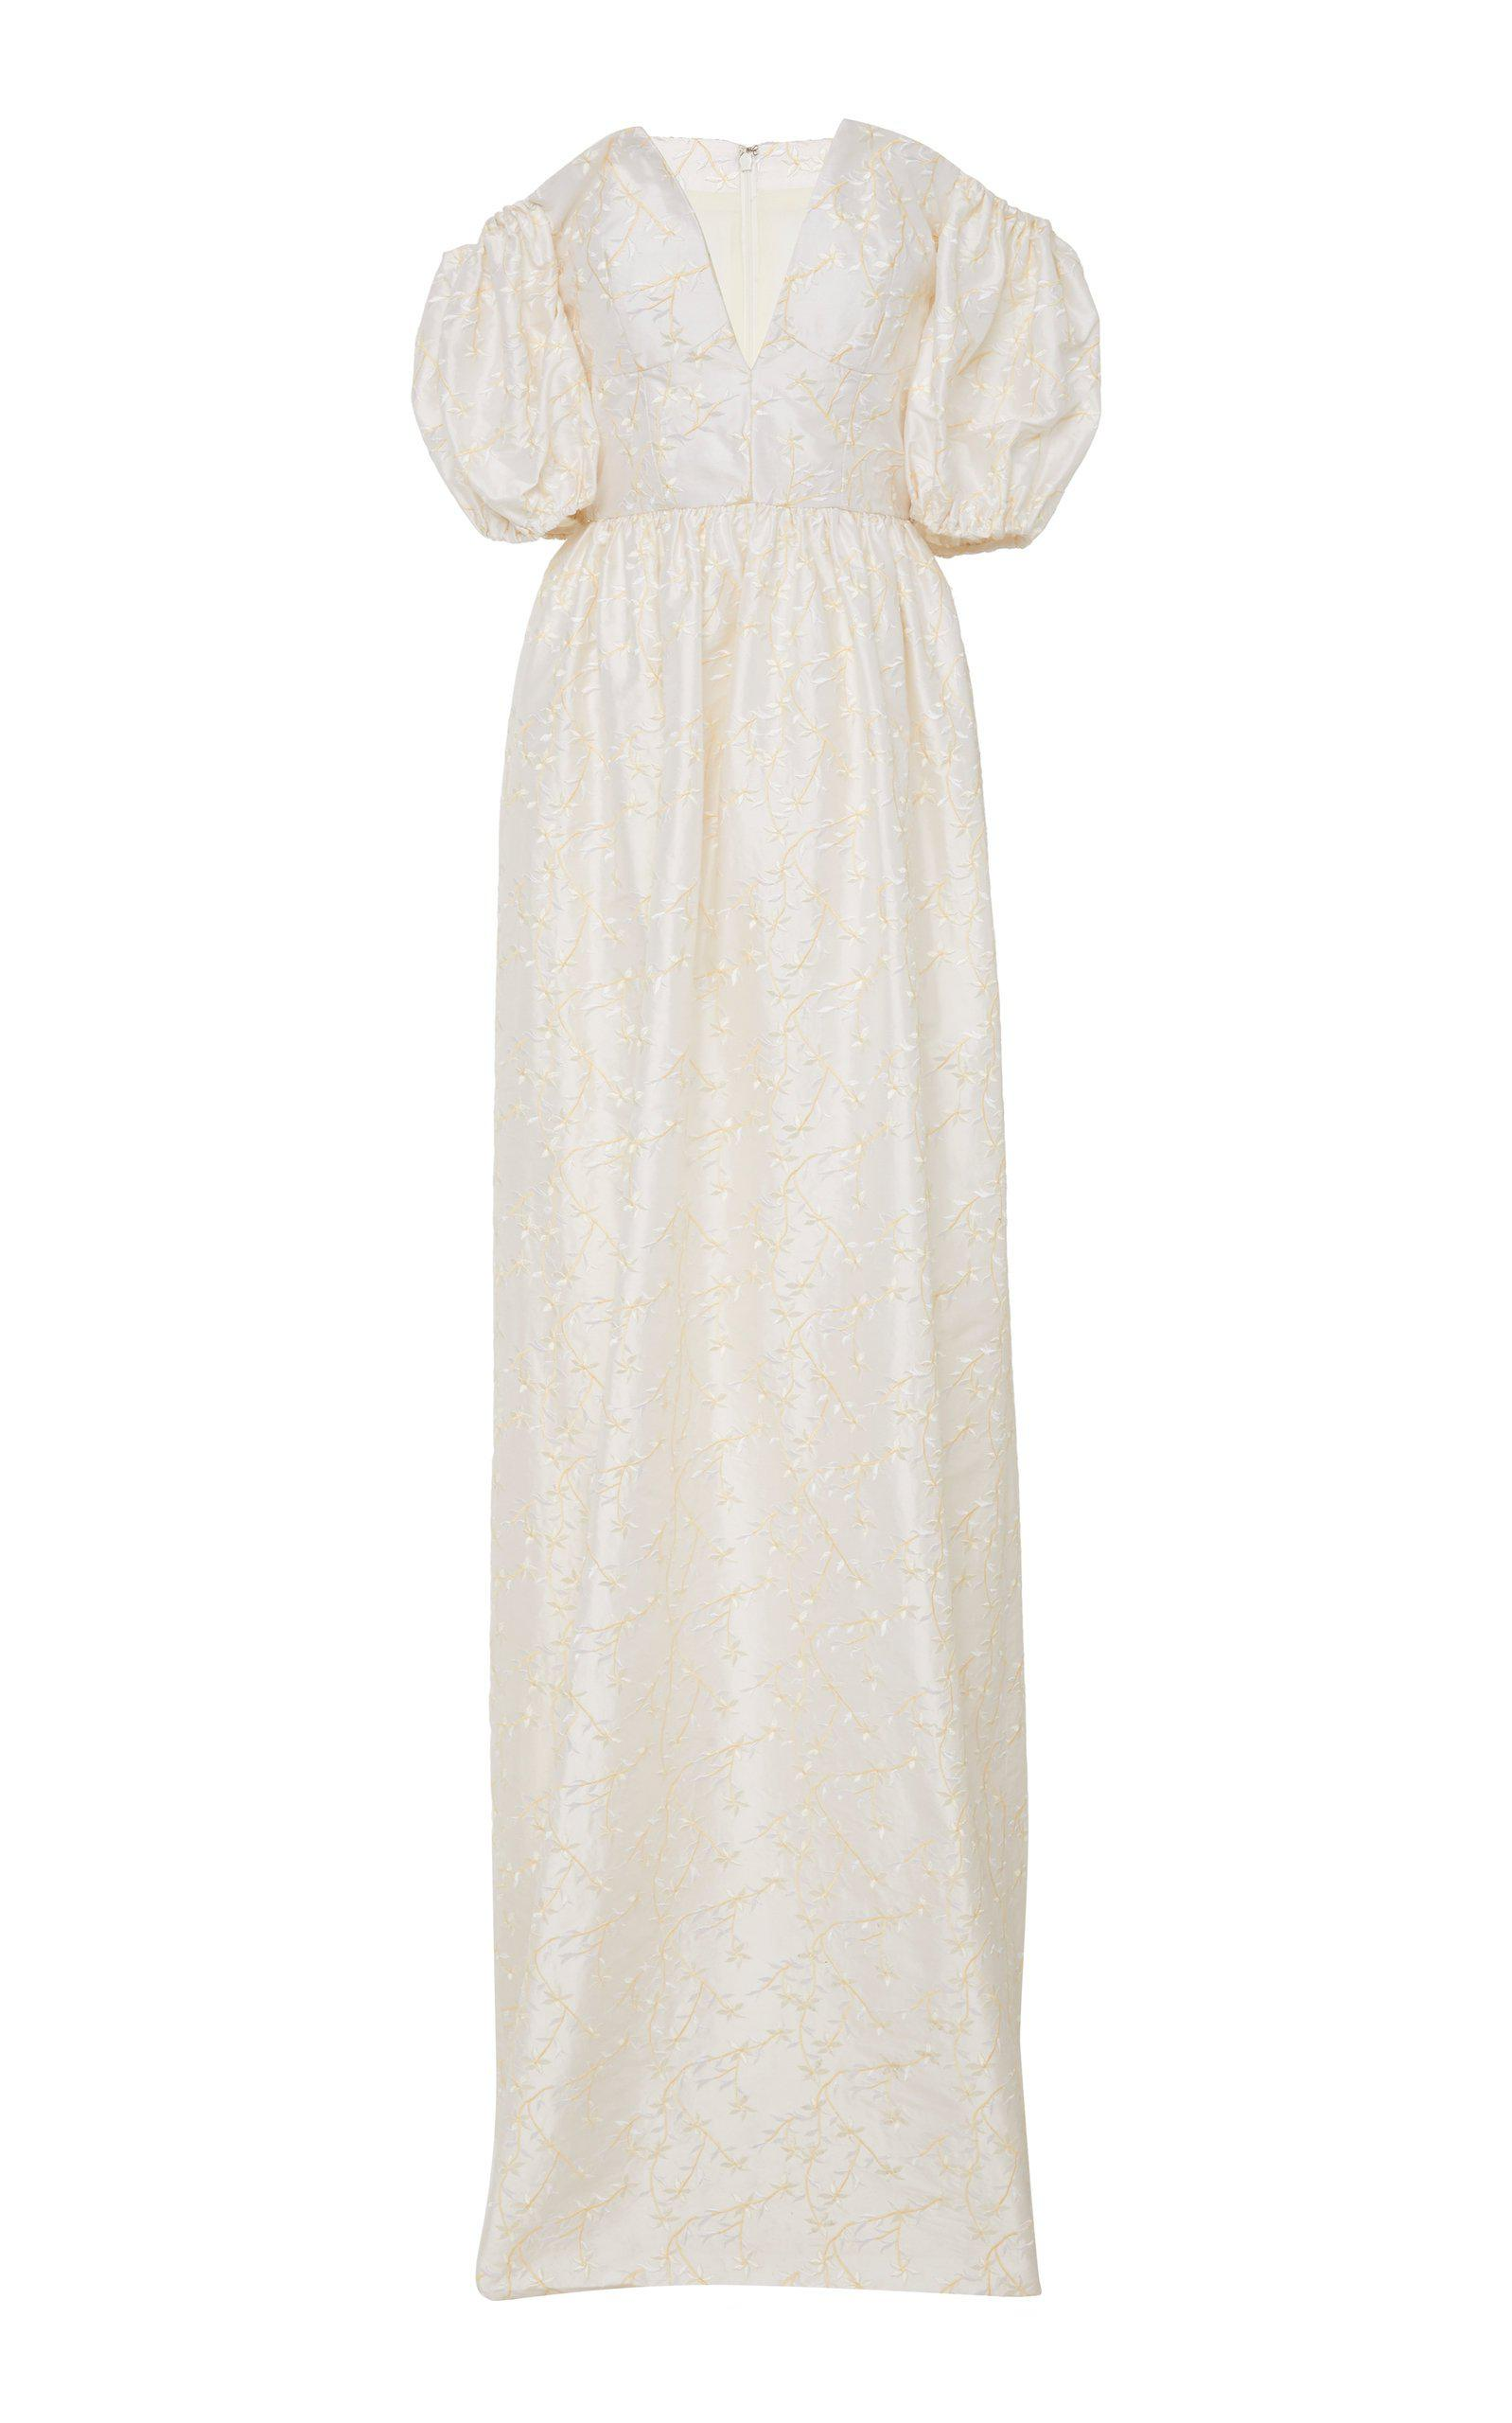 Archive Sale: White Floral Embroidered Silk Gown 1